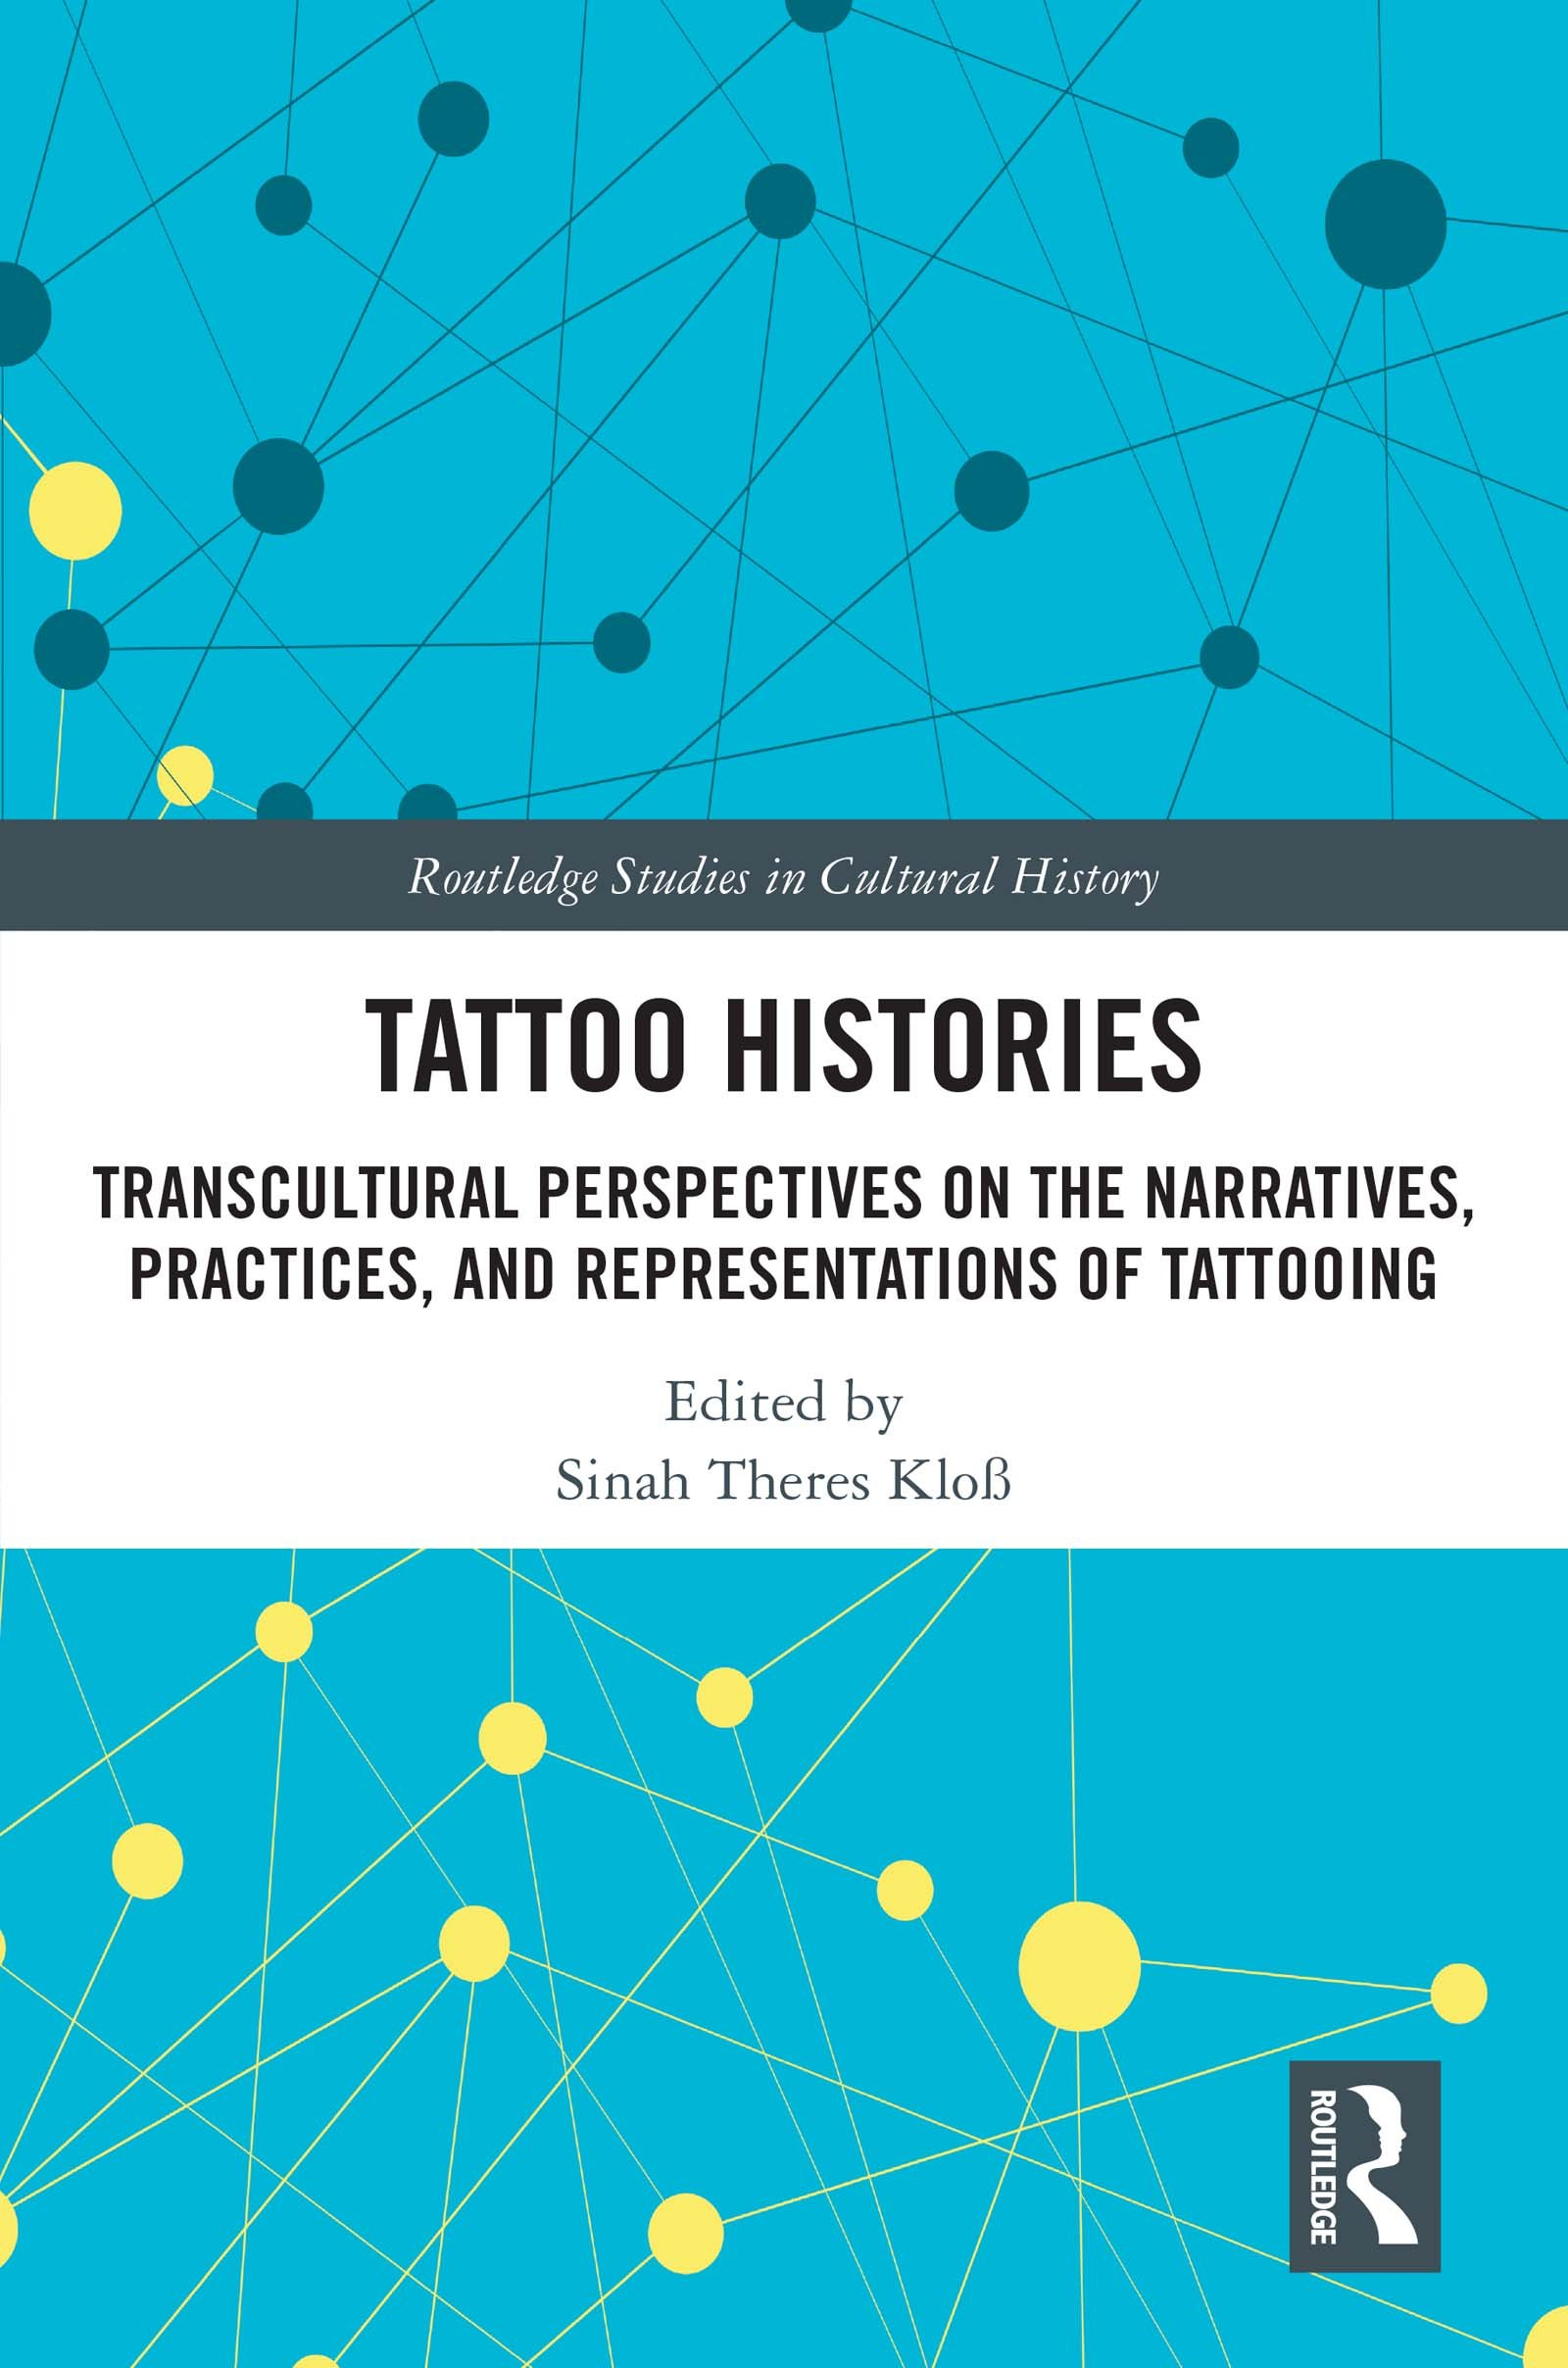 Tattoo Histories: Transcultural Perspectives on the Narratives, Practices, and Representations of Tattooing book cover